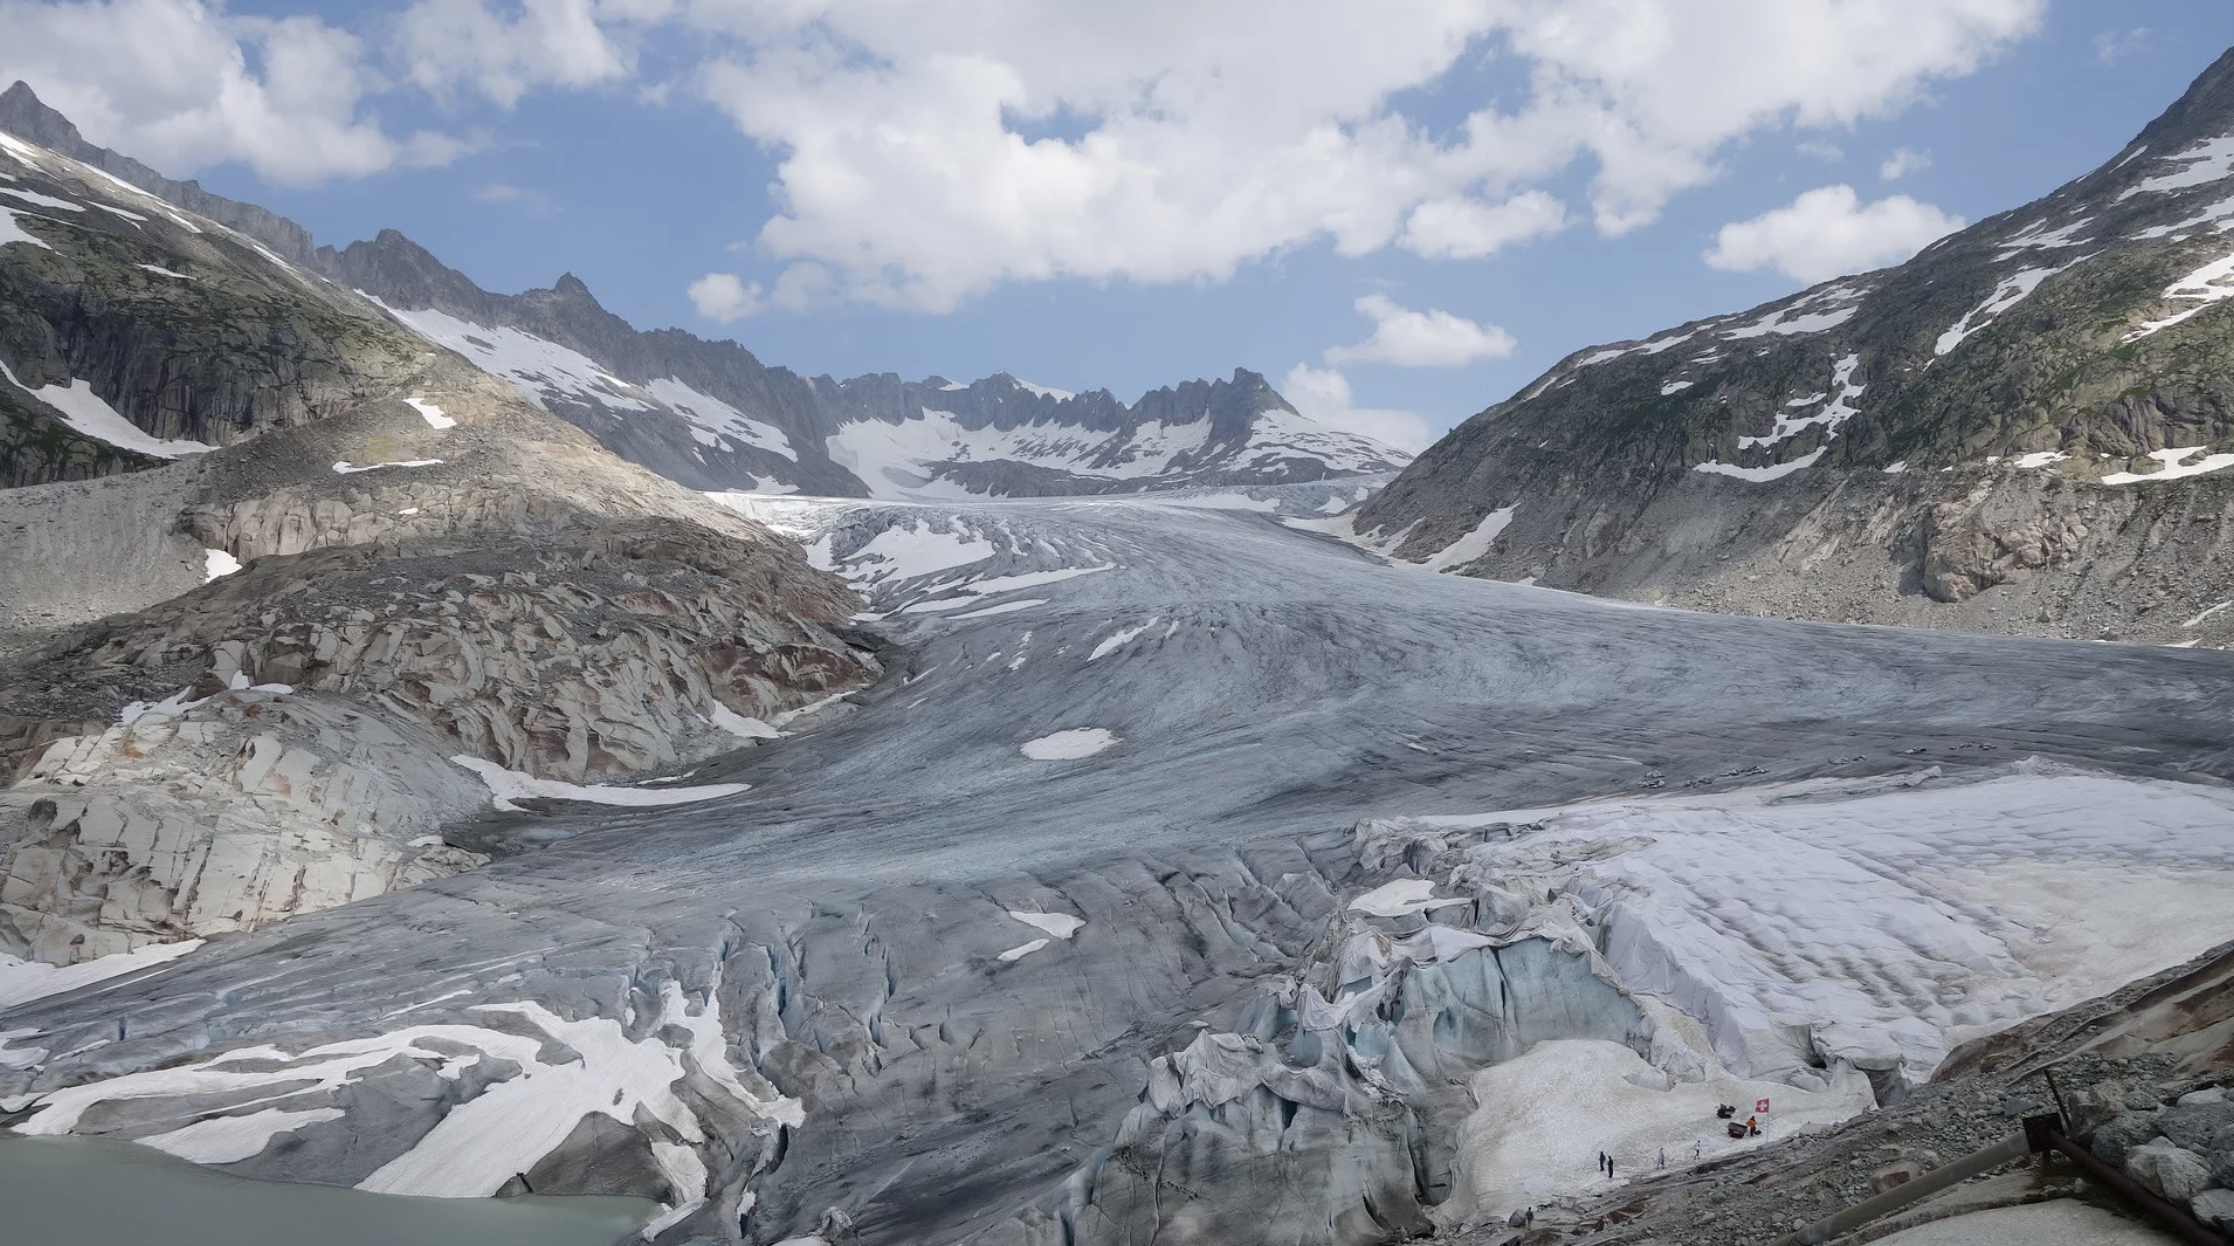 Gletscher-Initiative - This Swiss initiative aims at phasing-out fossil energies.